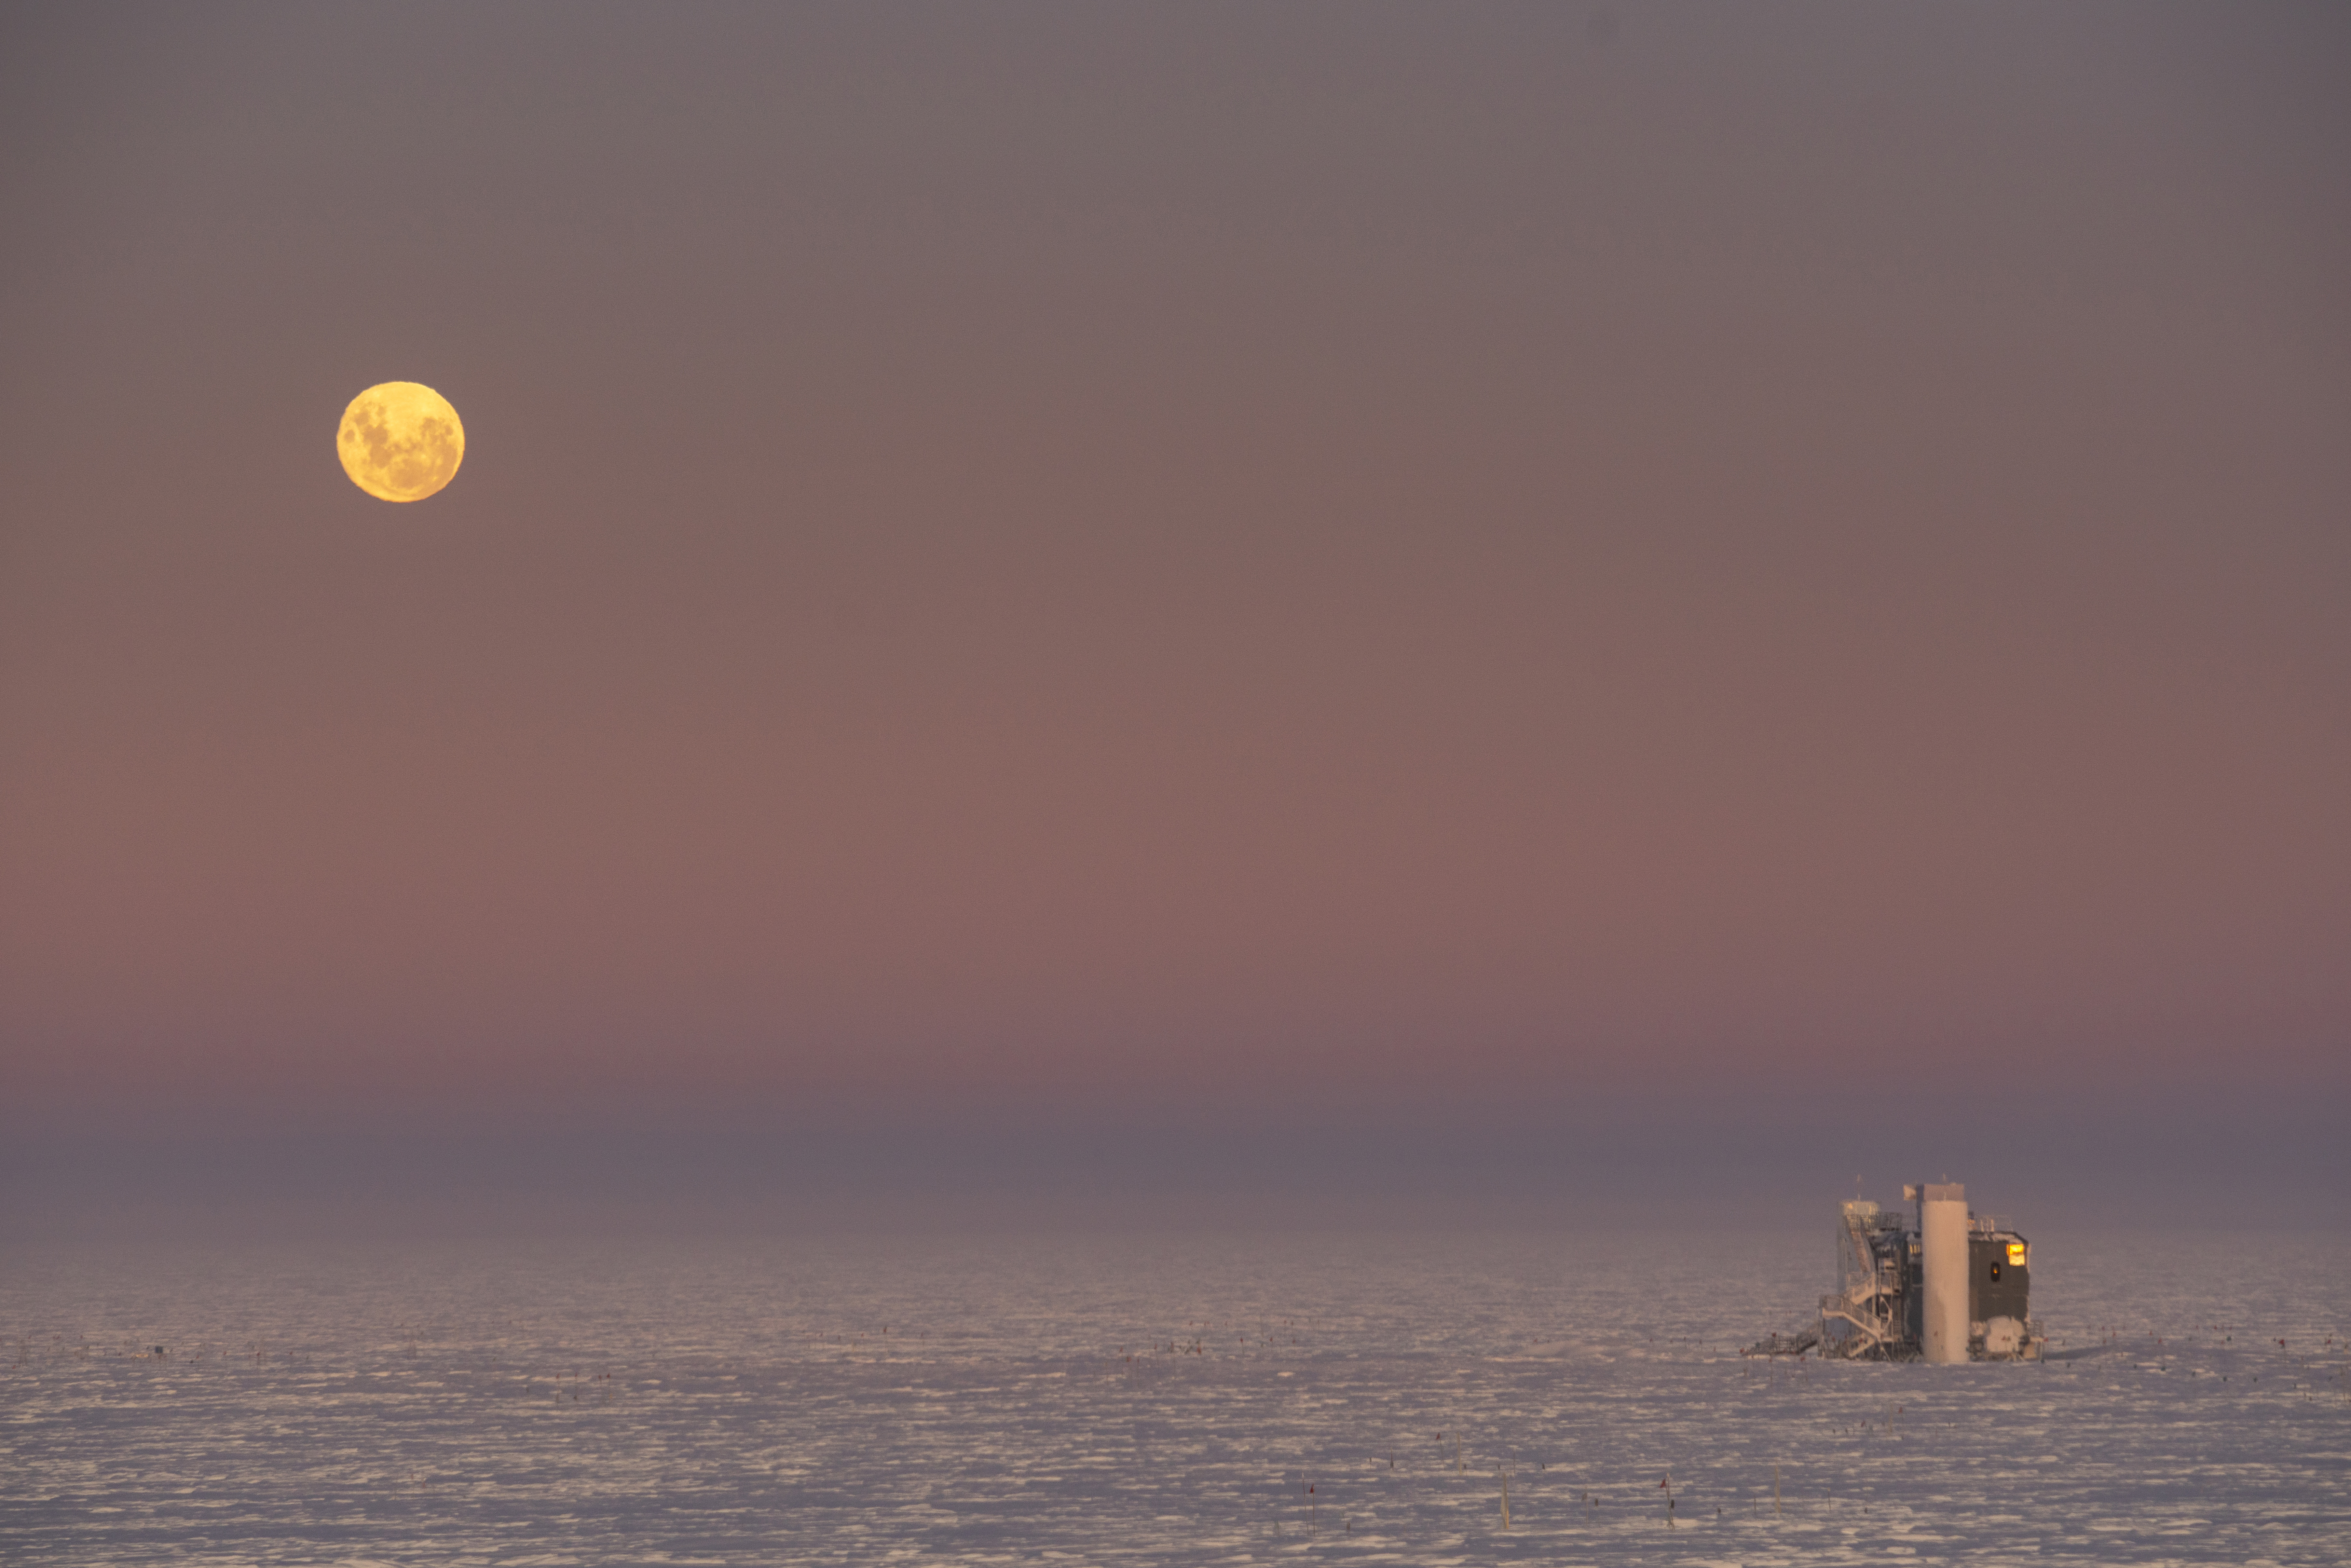 Full moon low in sky above IceCube Lab at sunrise.